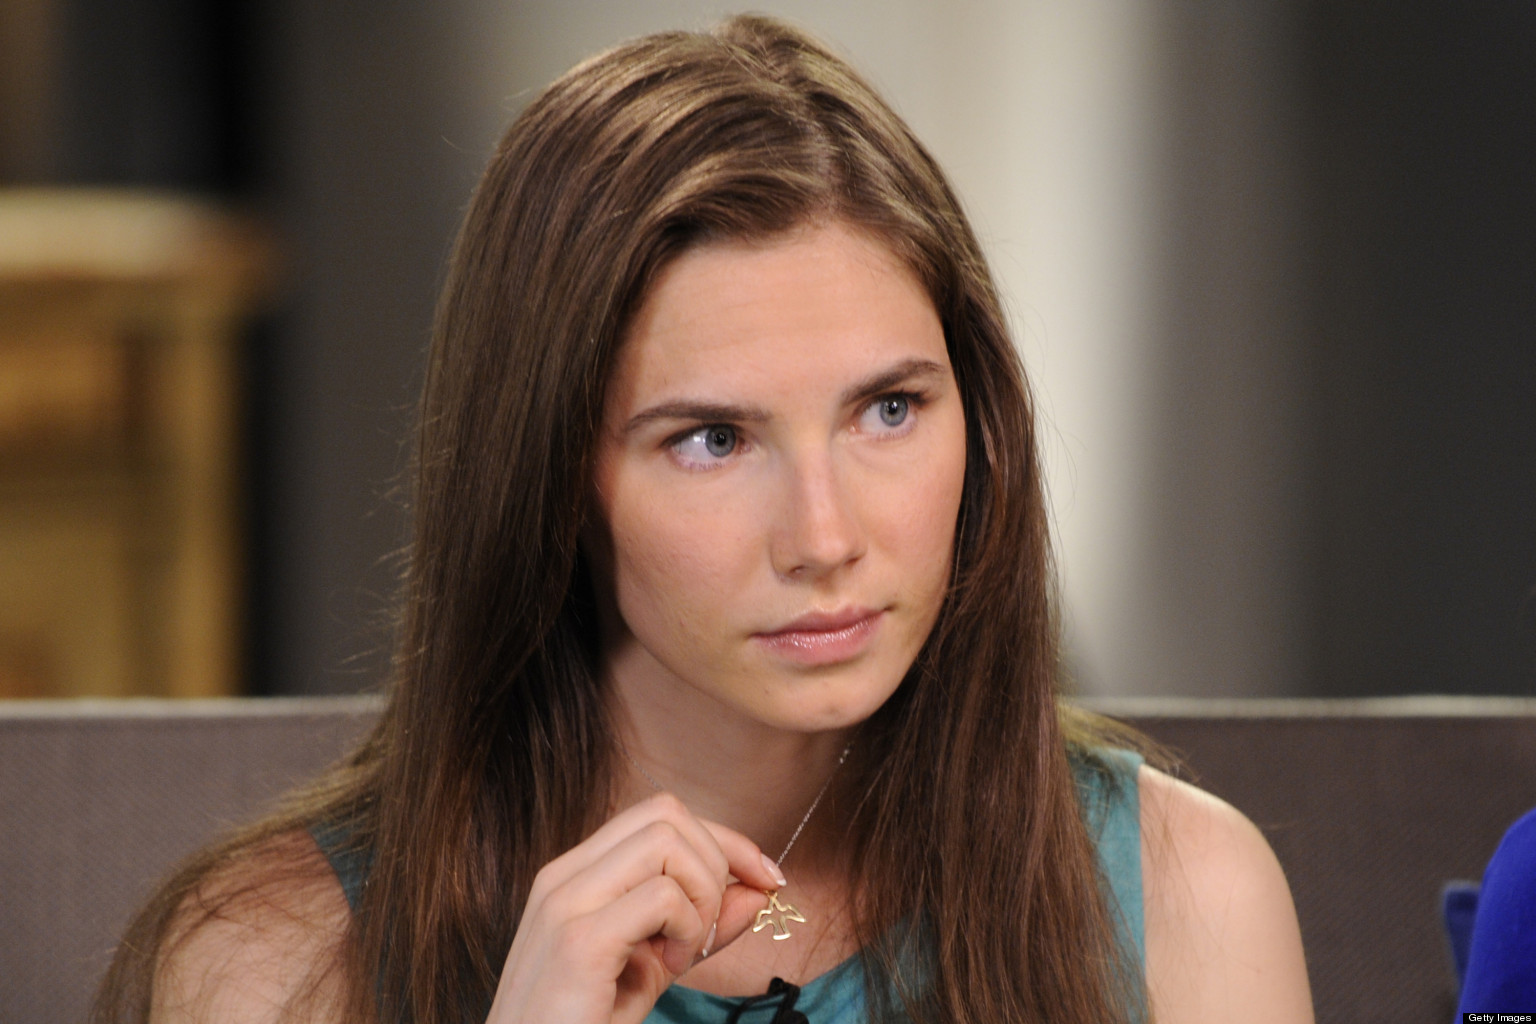 don t spend junior year abroad in jail like amanda knox